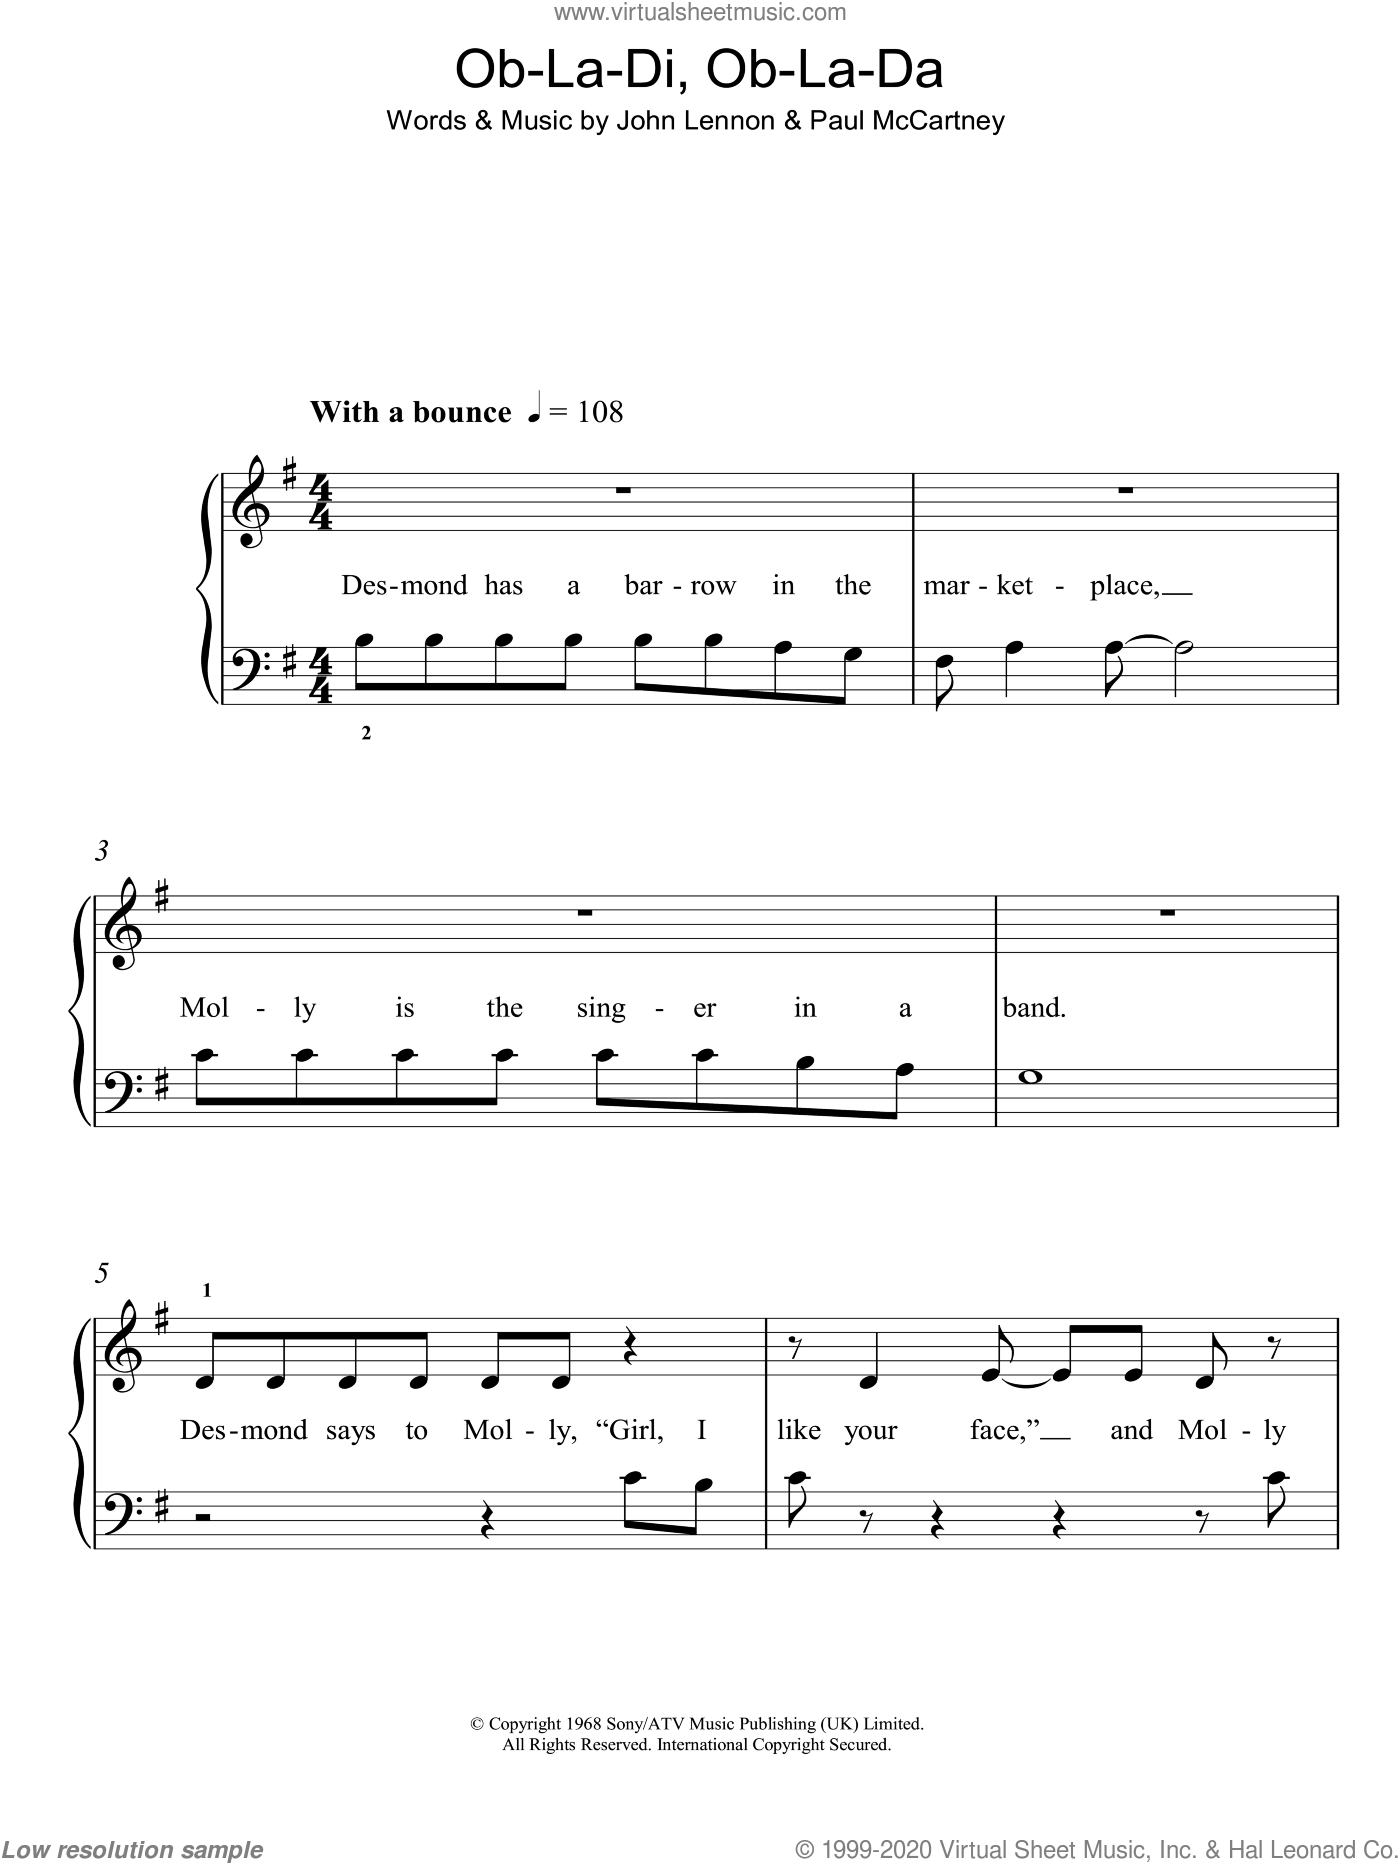 Ob-La-Di, Ob-La-Da sheet music for piano solo by John Lennon